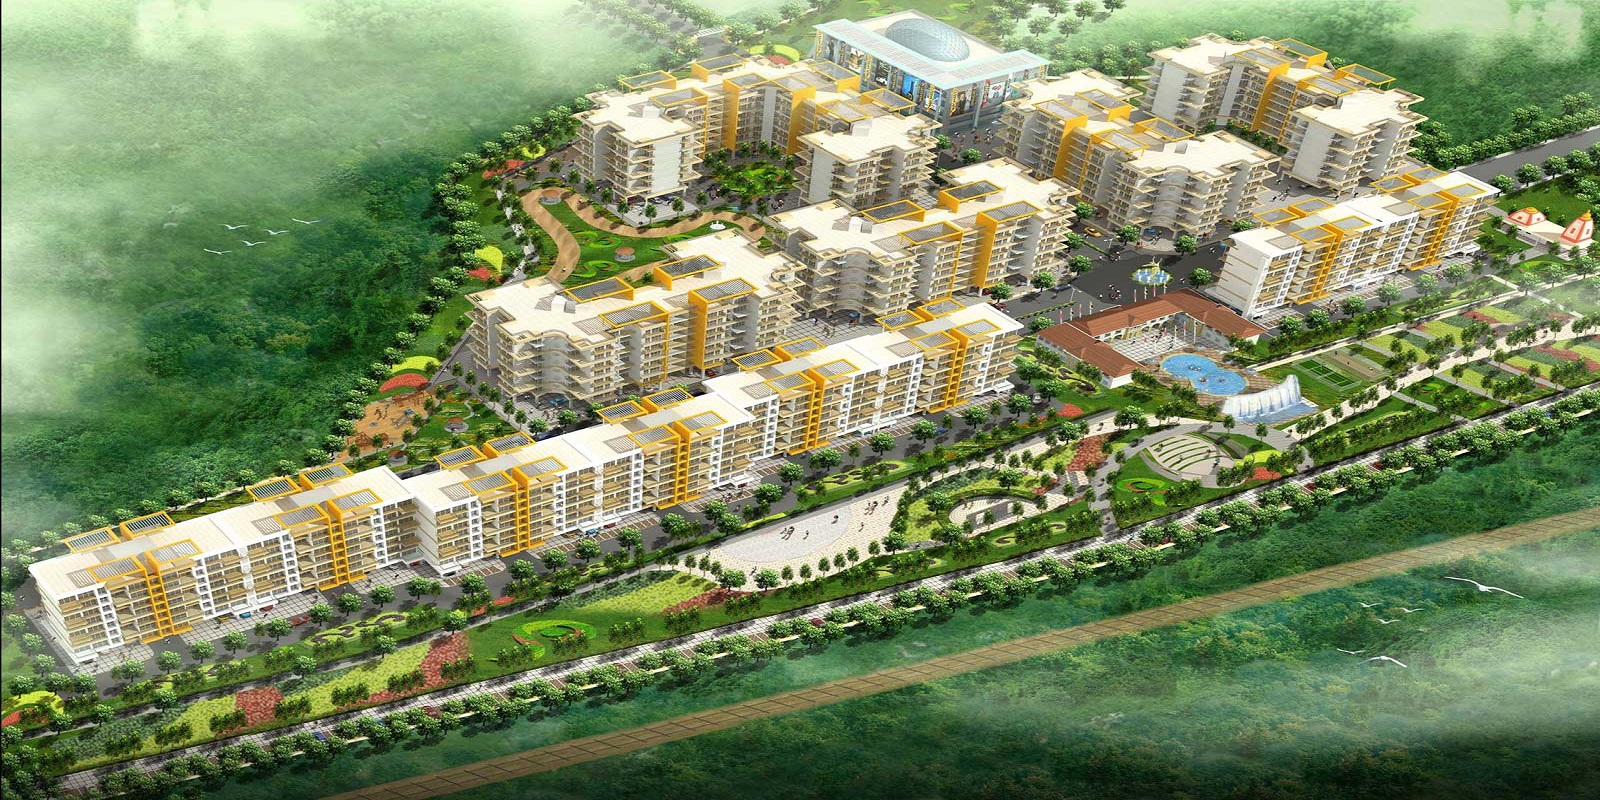 pranjee garden city phase 2 in badlapur mumbai project overview